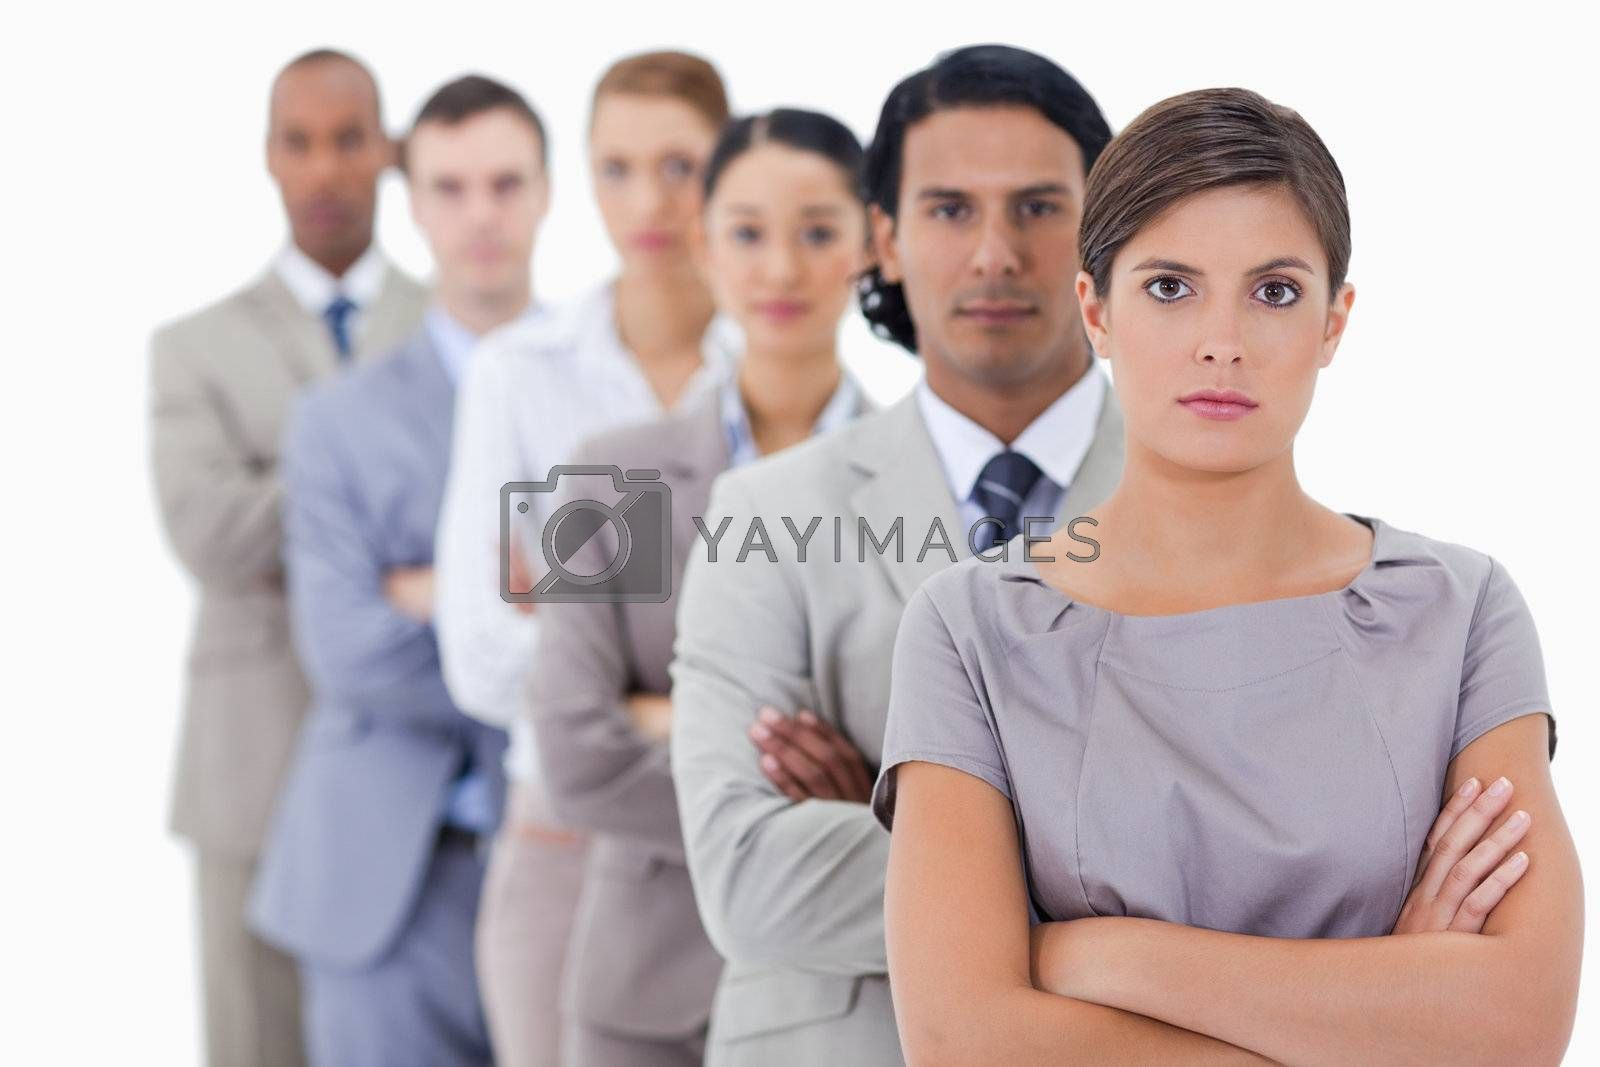 Big close-up of serious workmates in single a line crossing their arms with focus on the first woman